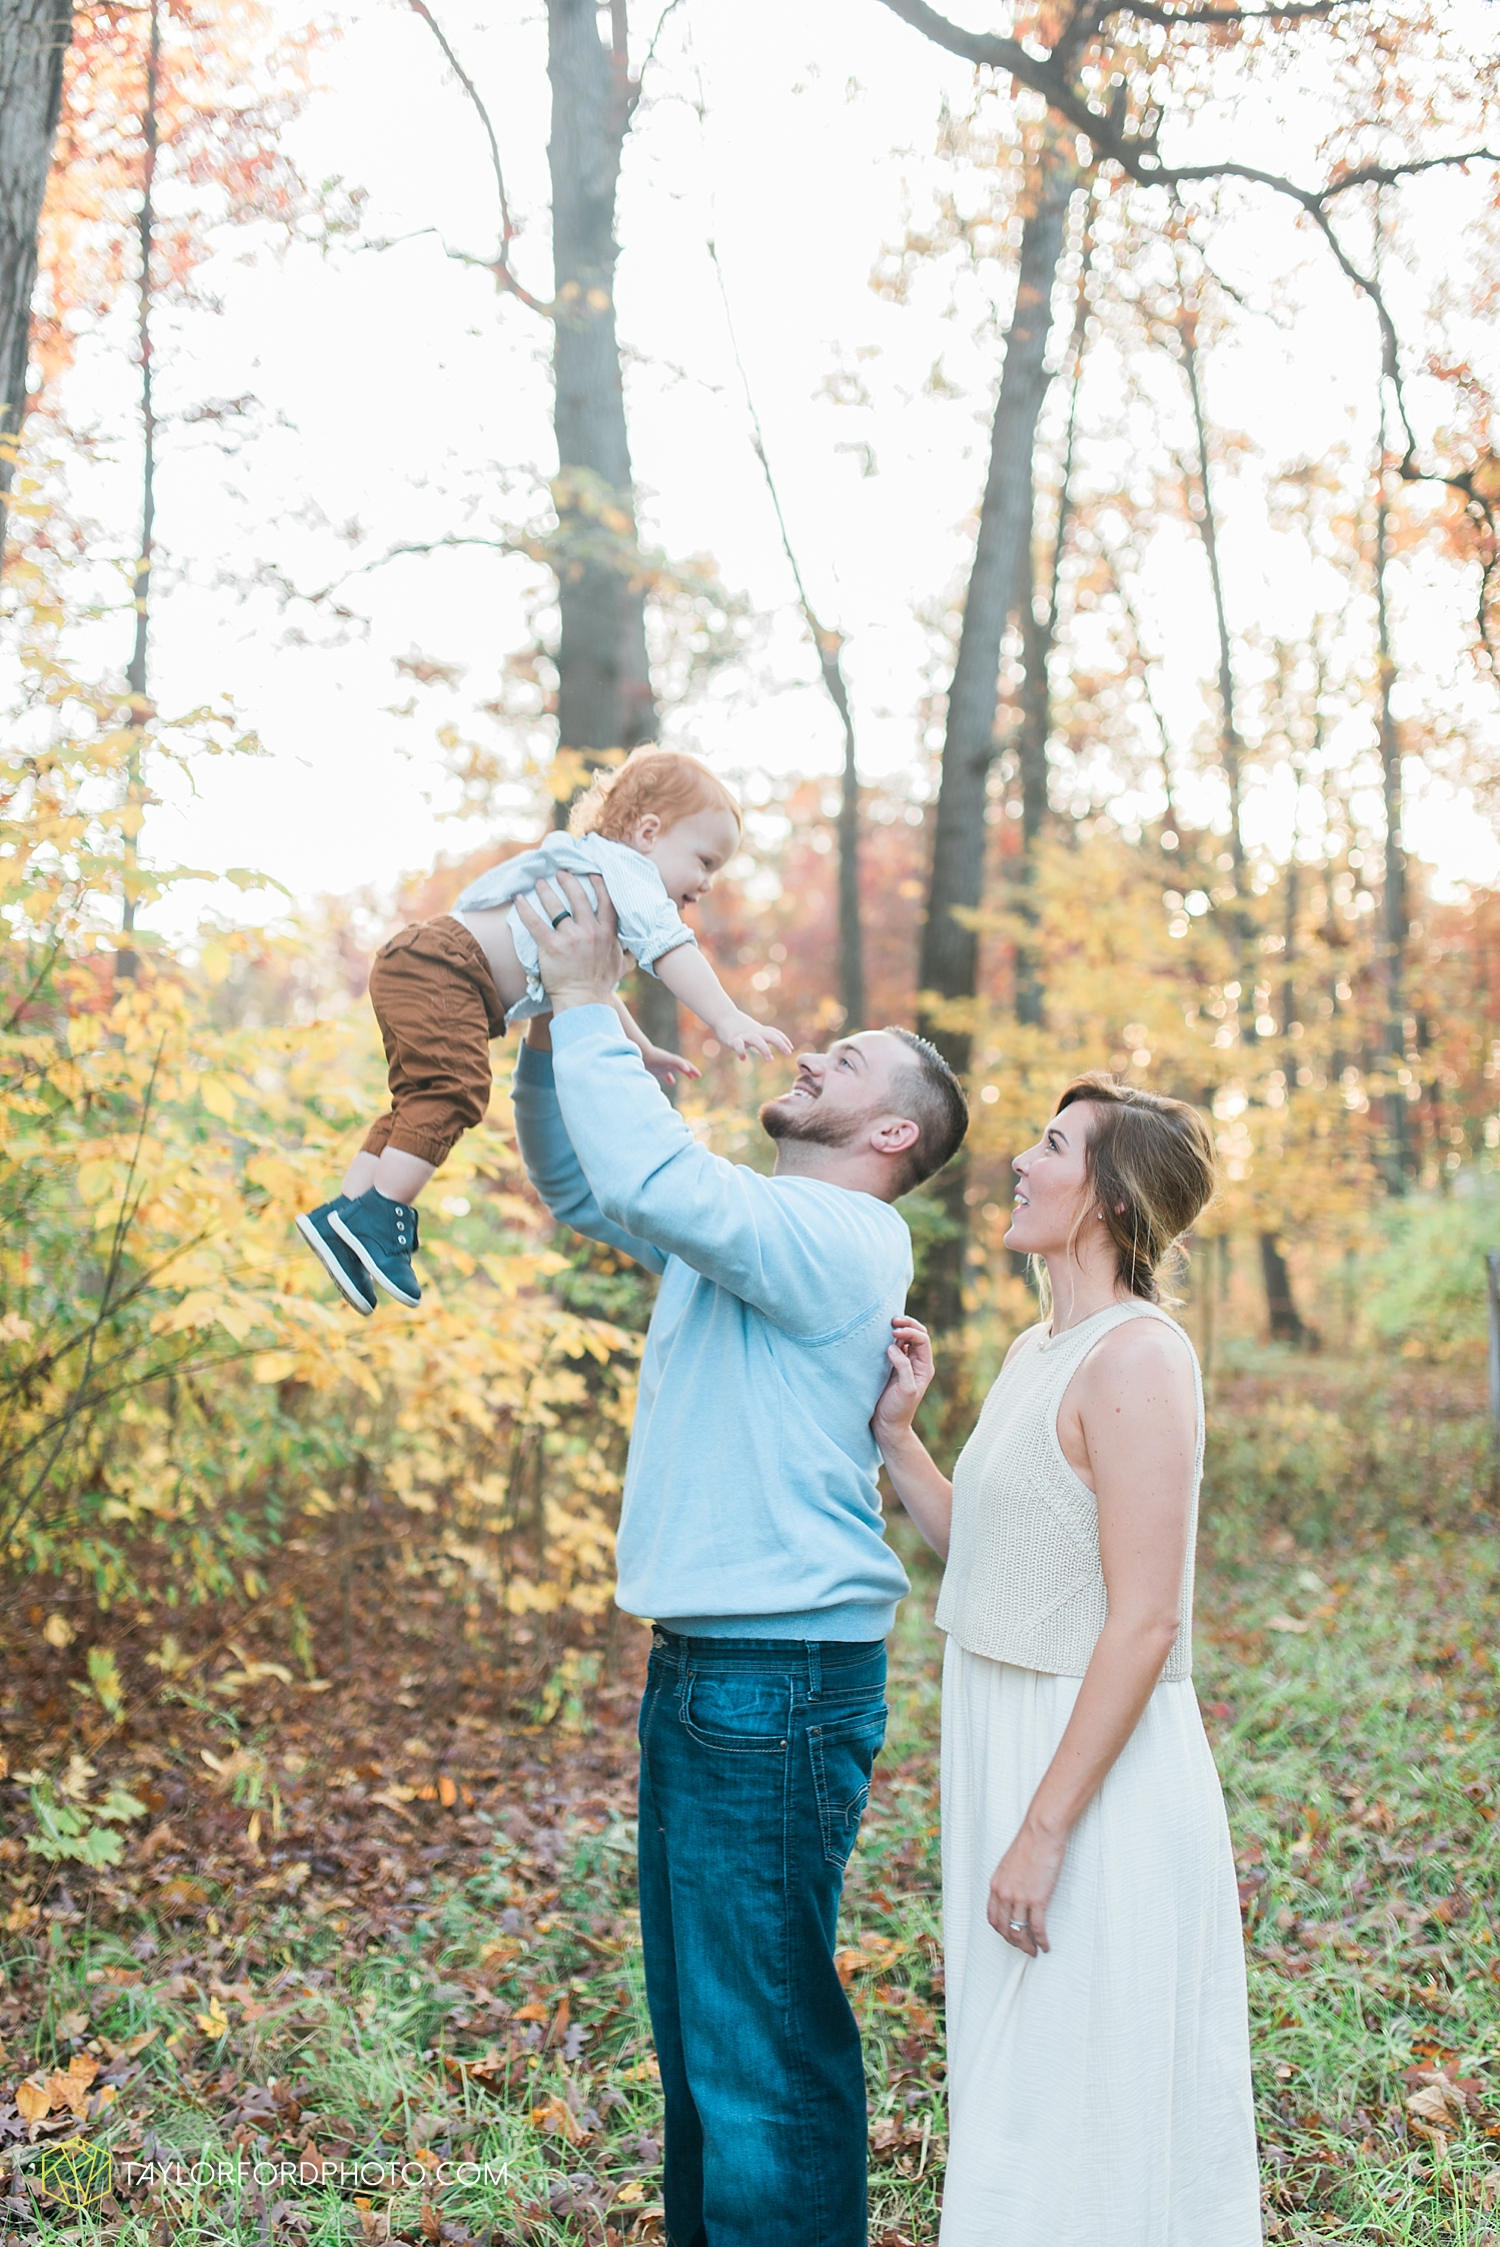 huntertown_indiana_family_photographer_taylor_ford_3609.jpg